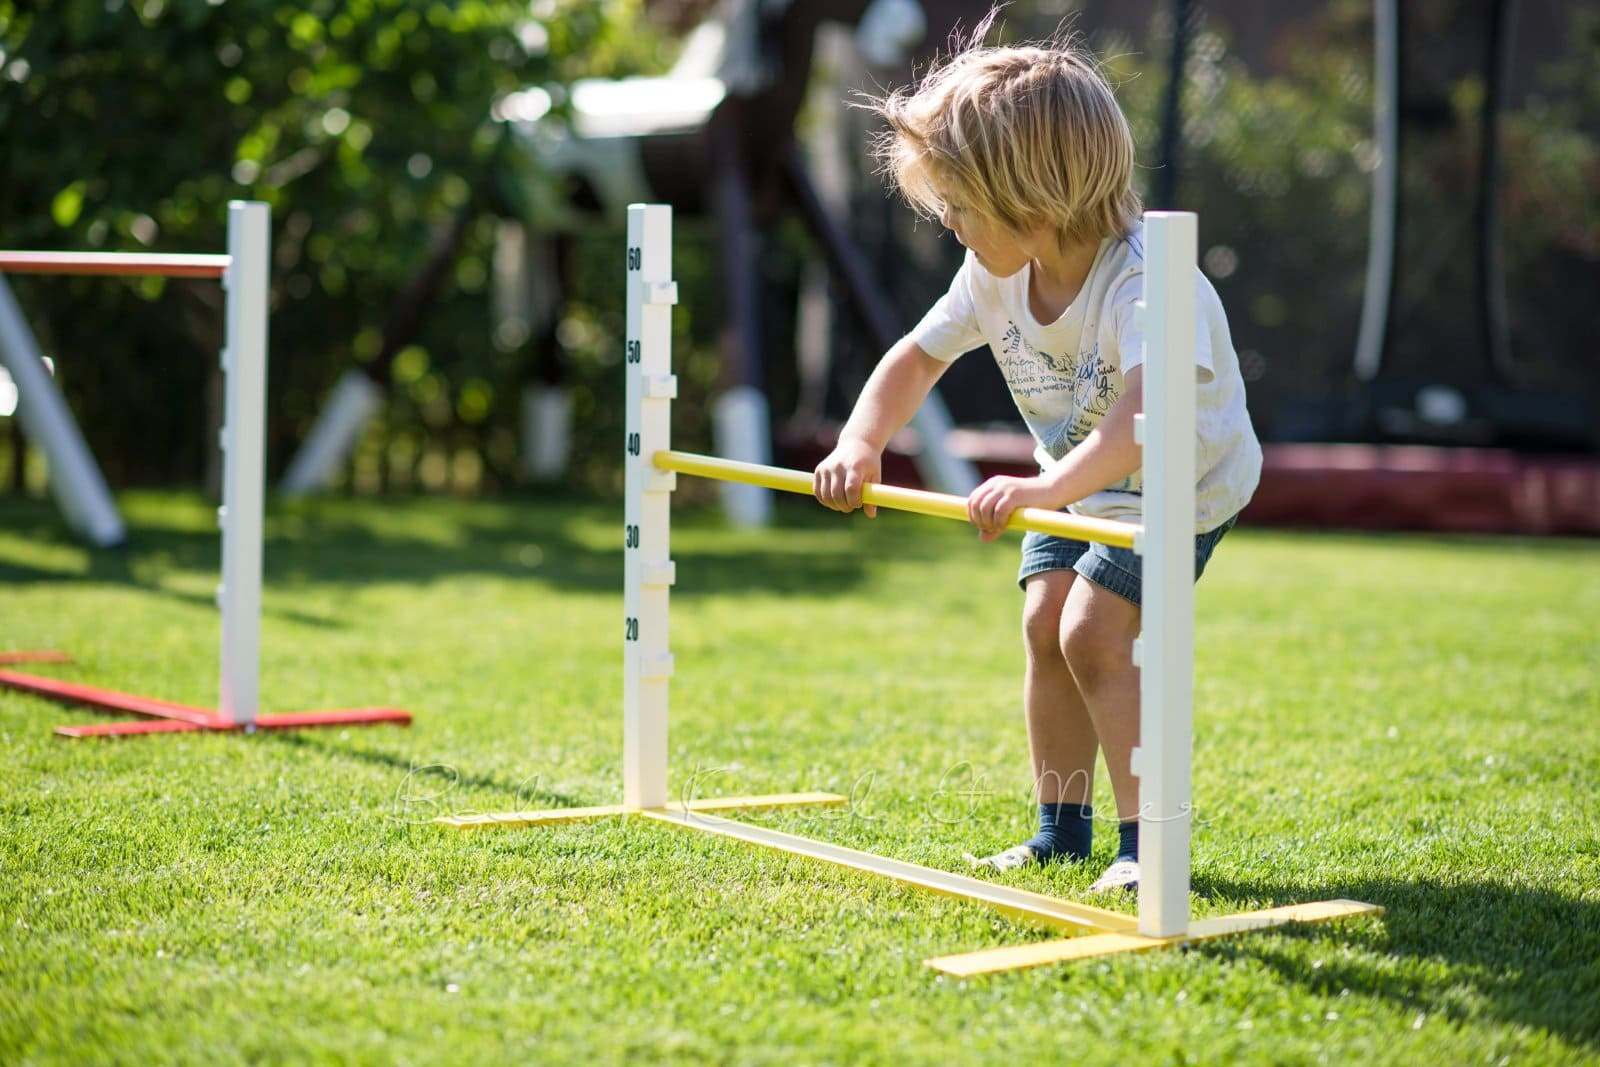 itkids Outdoor Spielzeuge 19